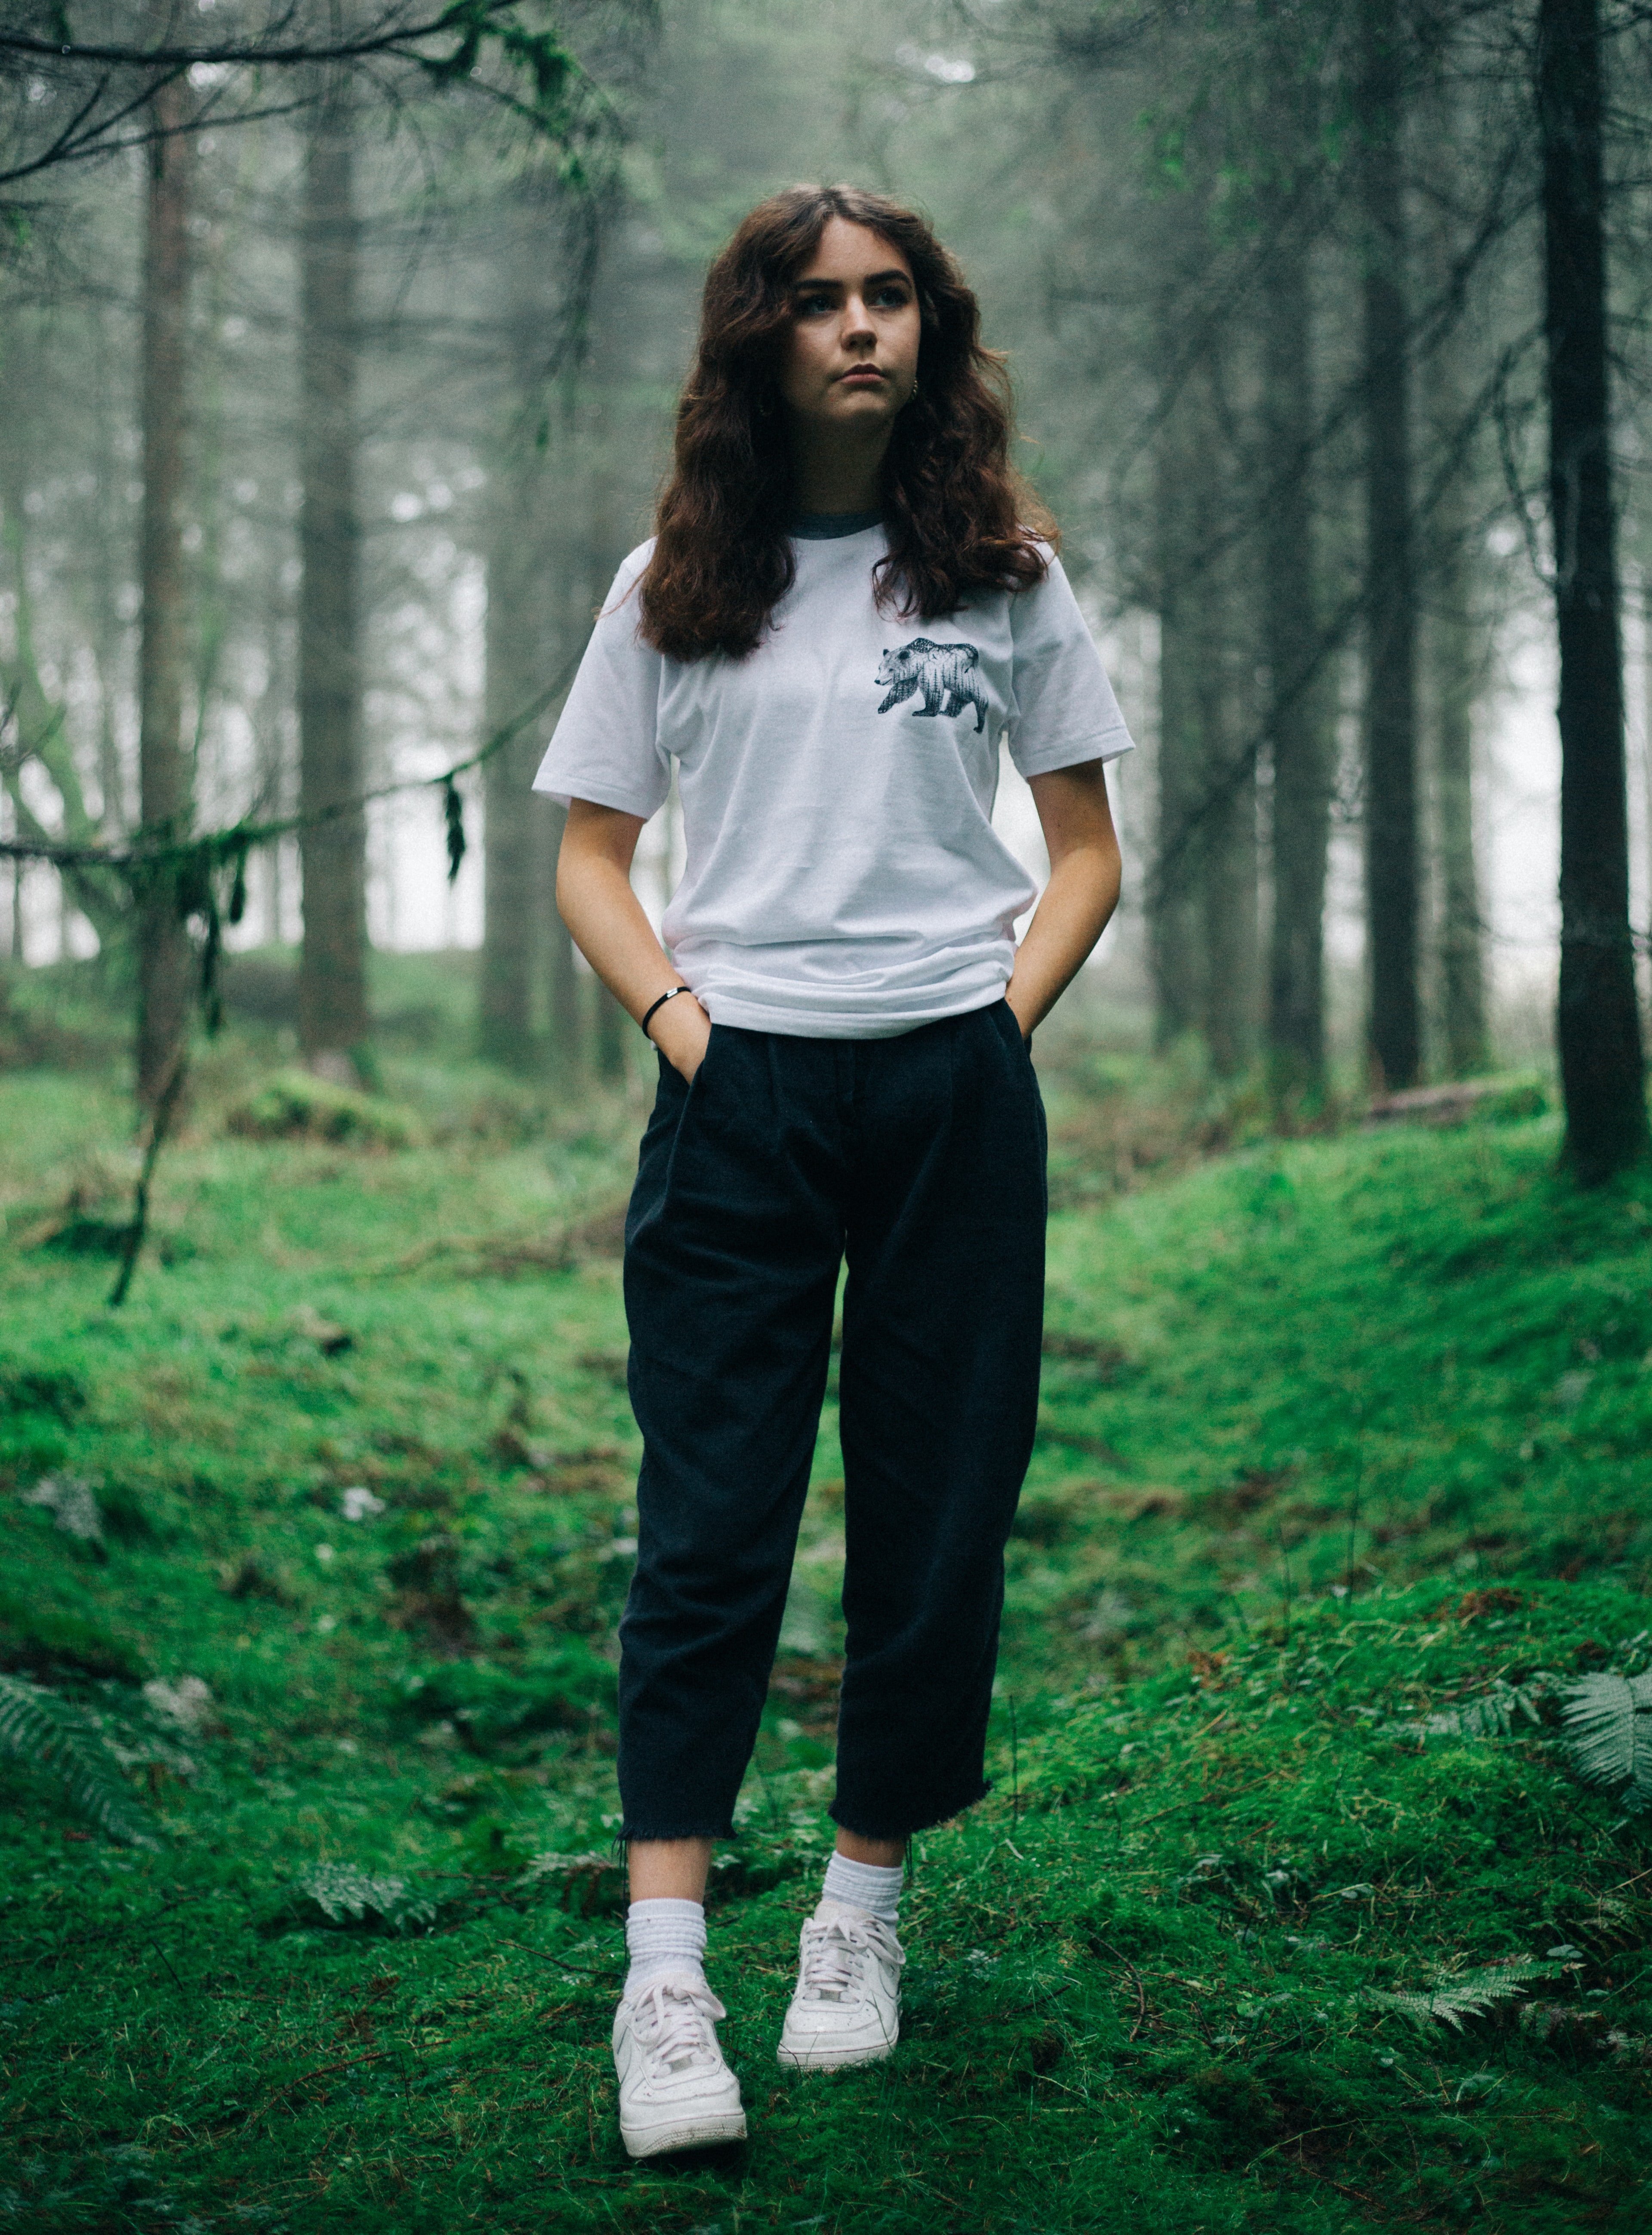 woman standing in middle of forest